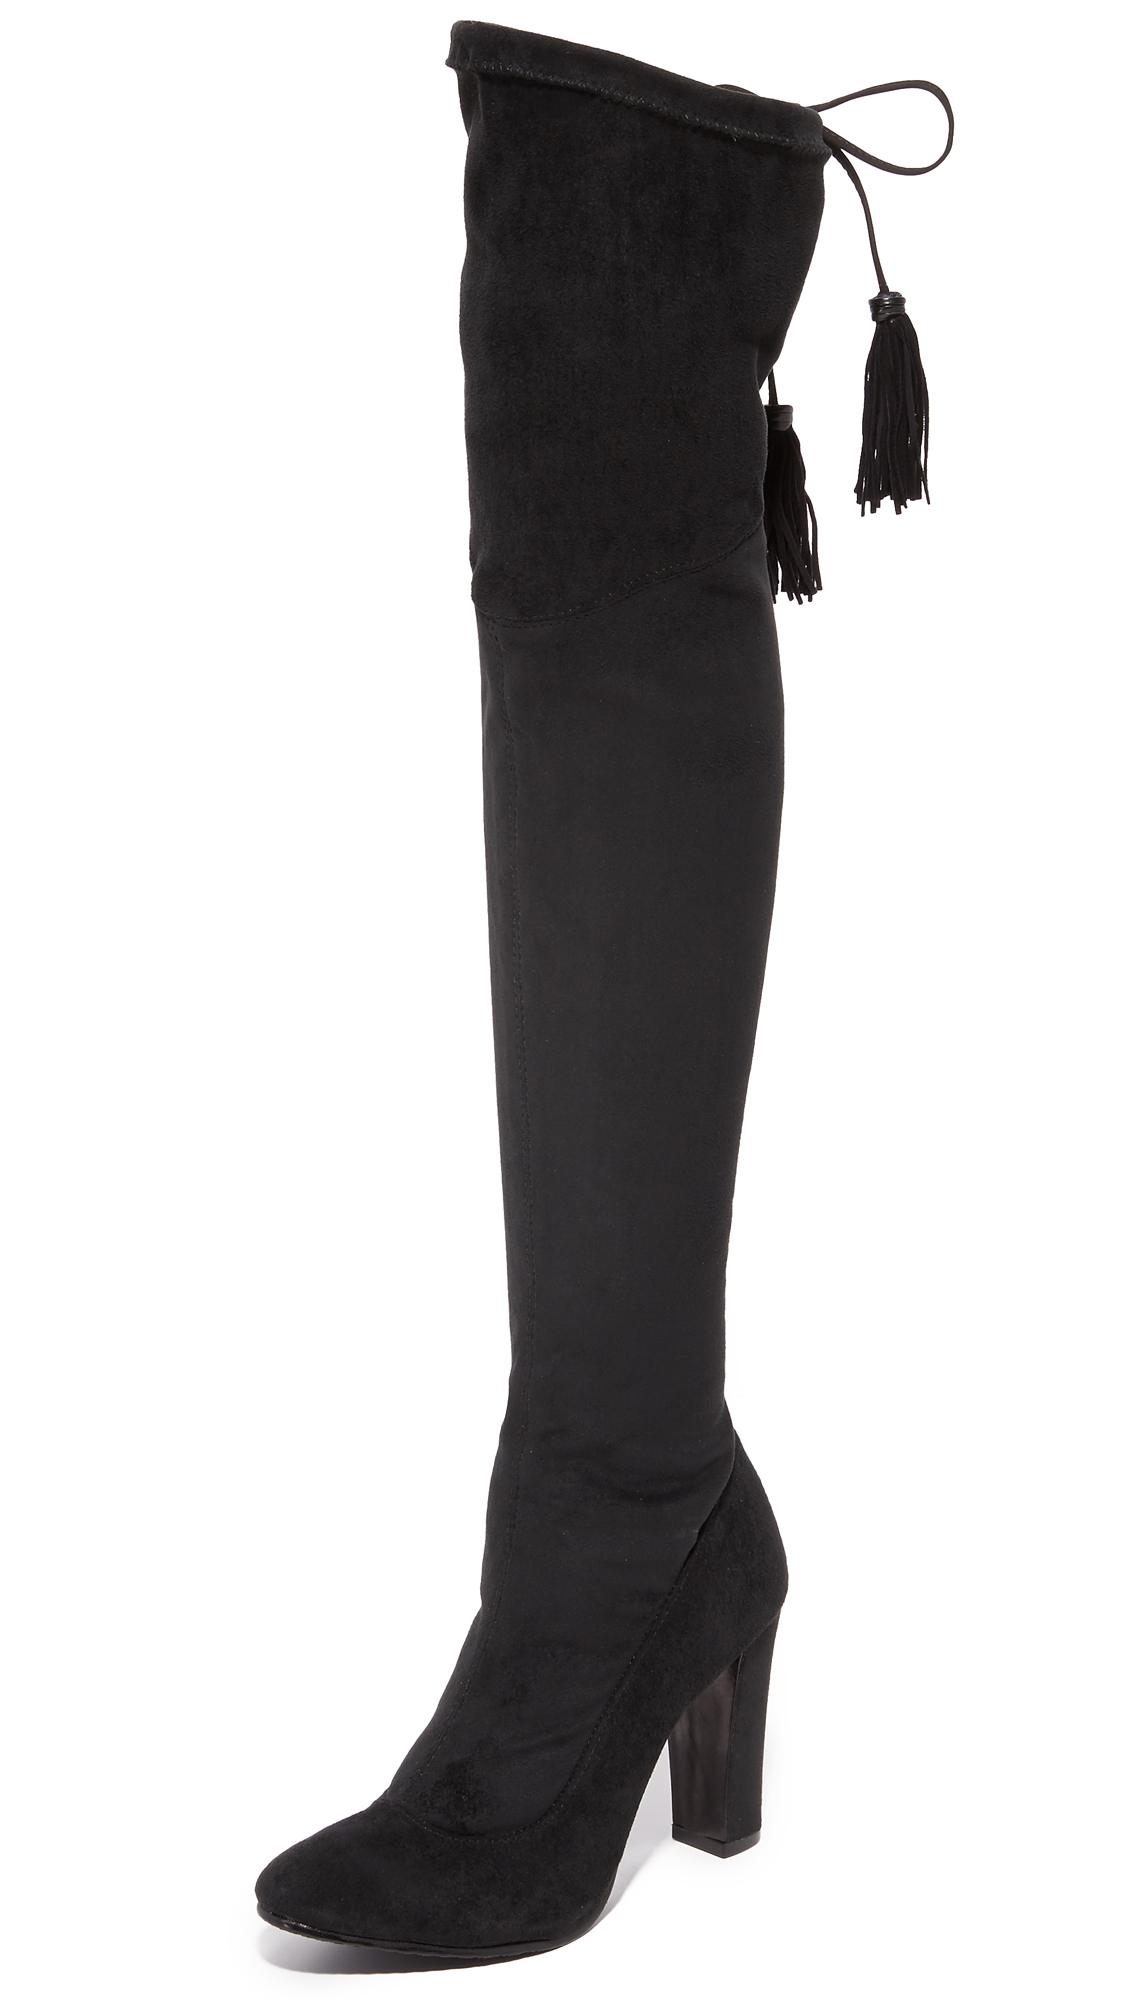 Schutz Beau Over The Knee Boots - Black